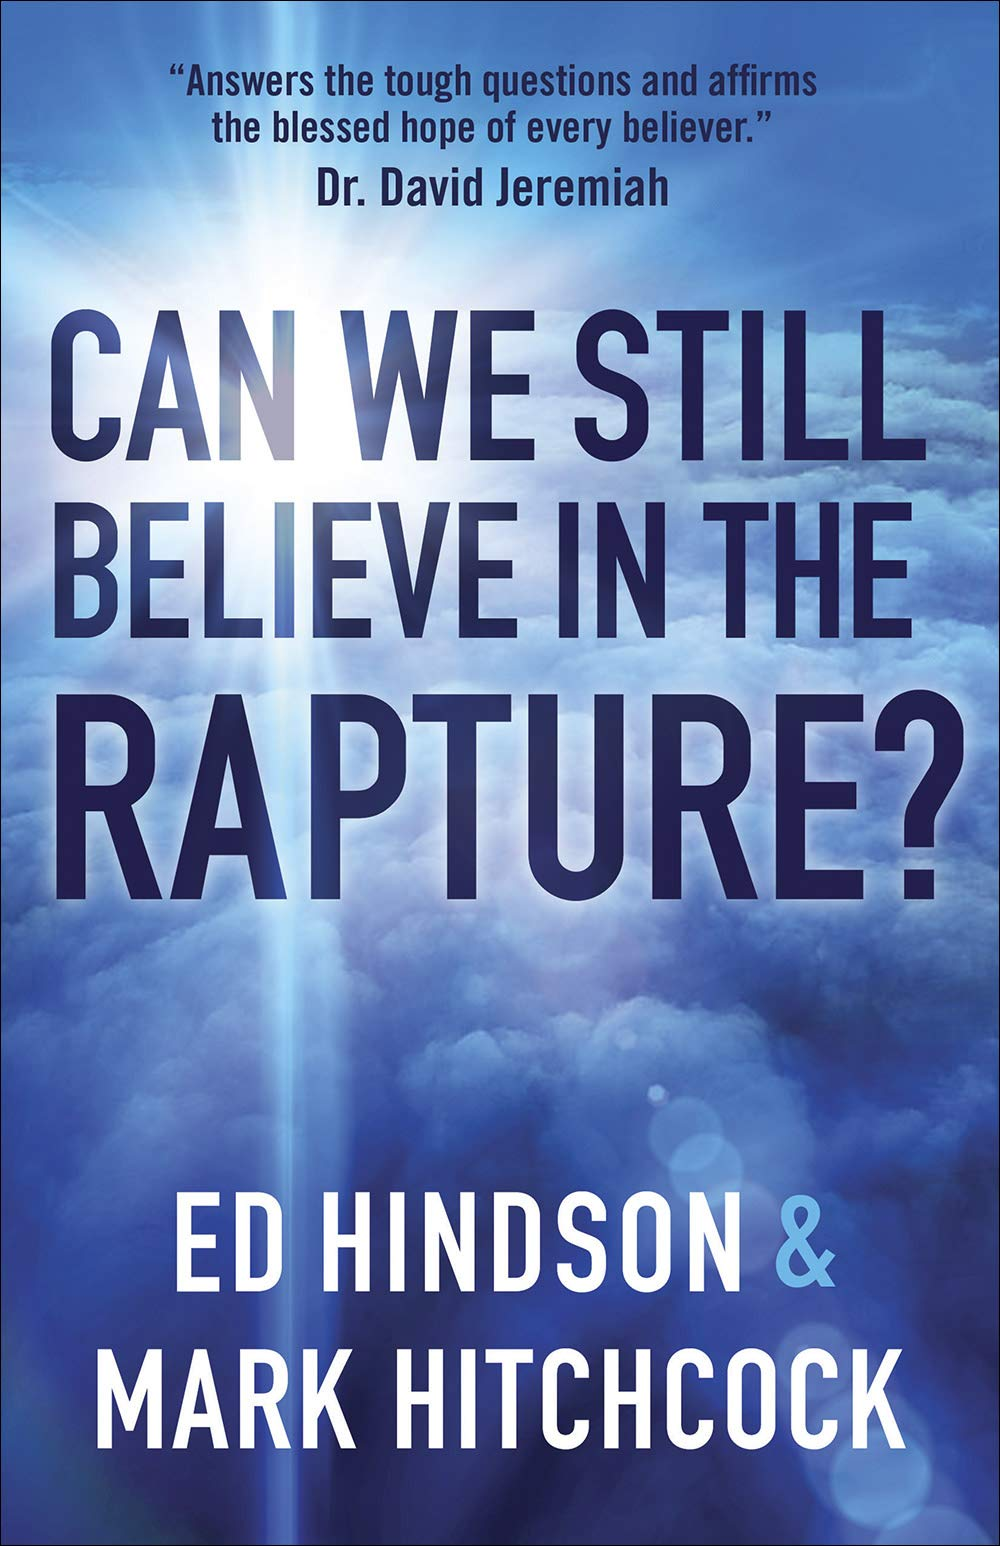 Can We Still Believe in the Rapture